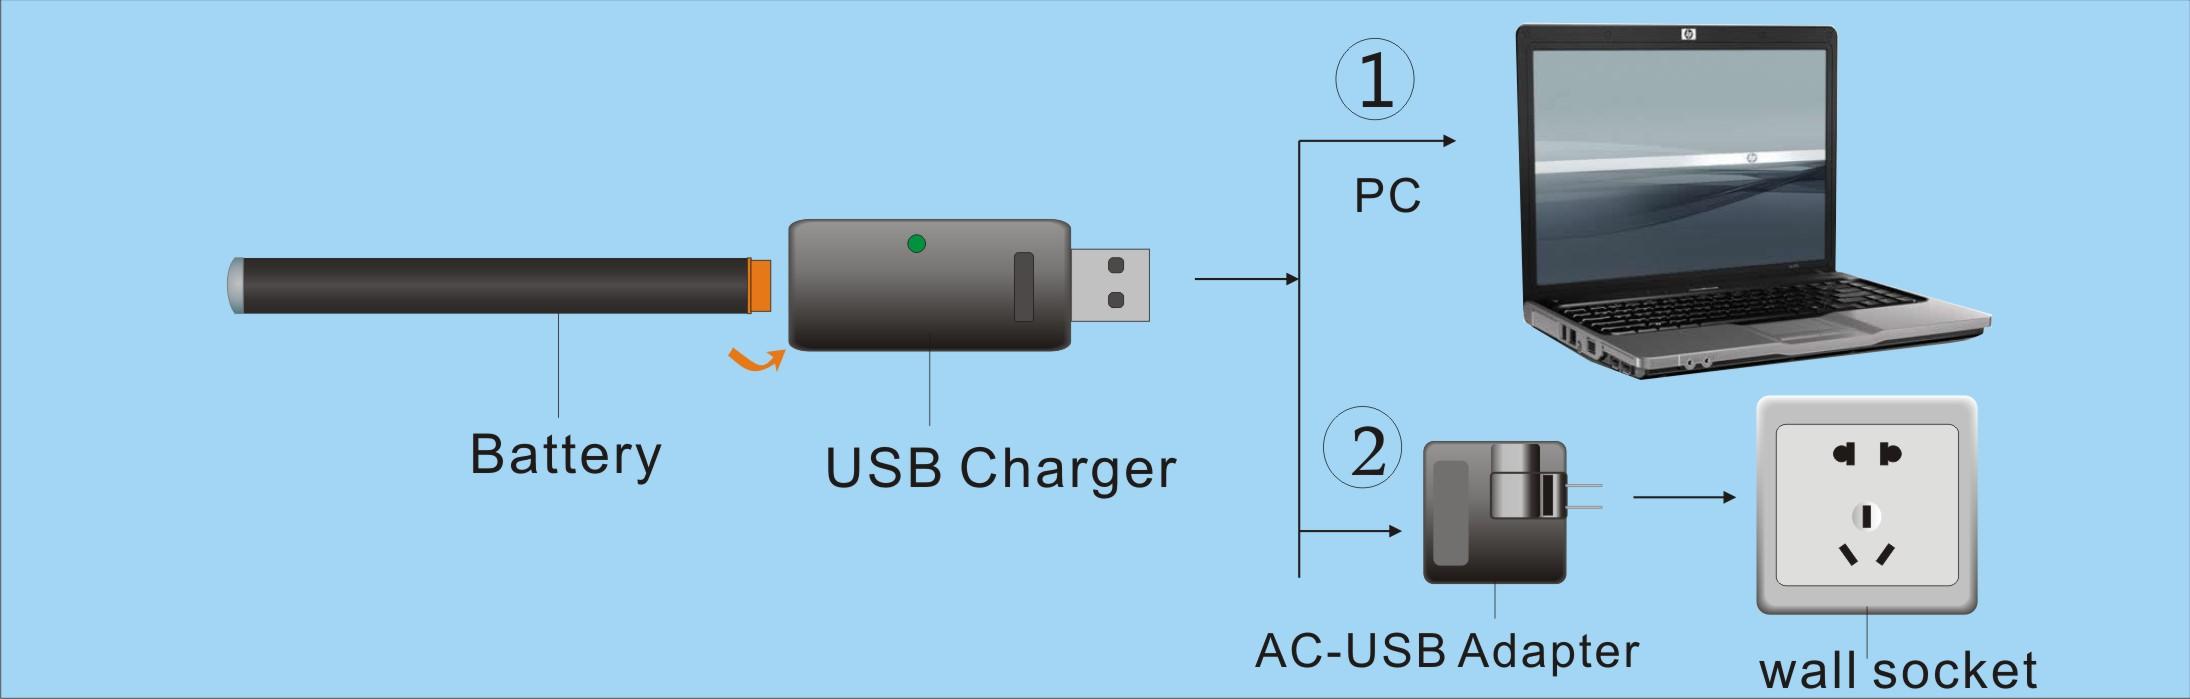 How to use 112/801 USB charger